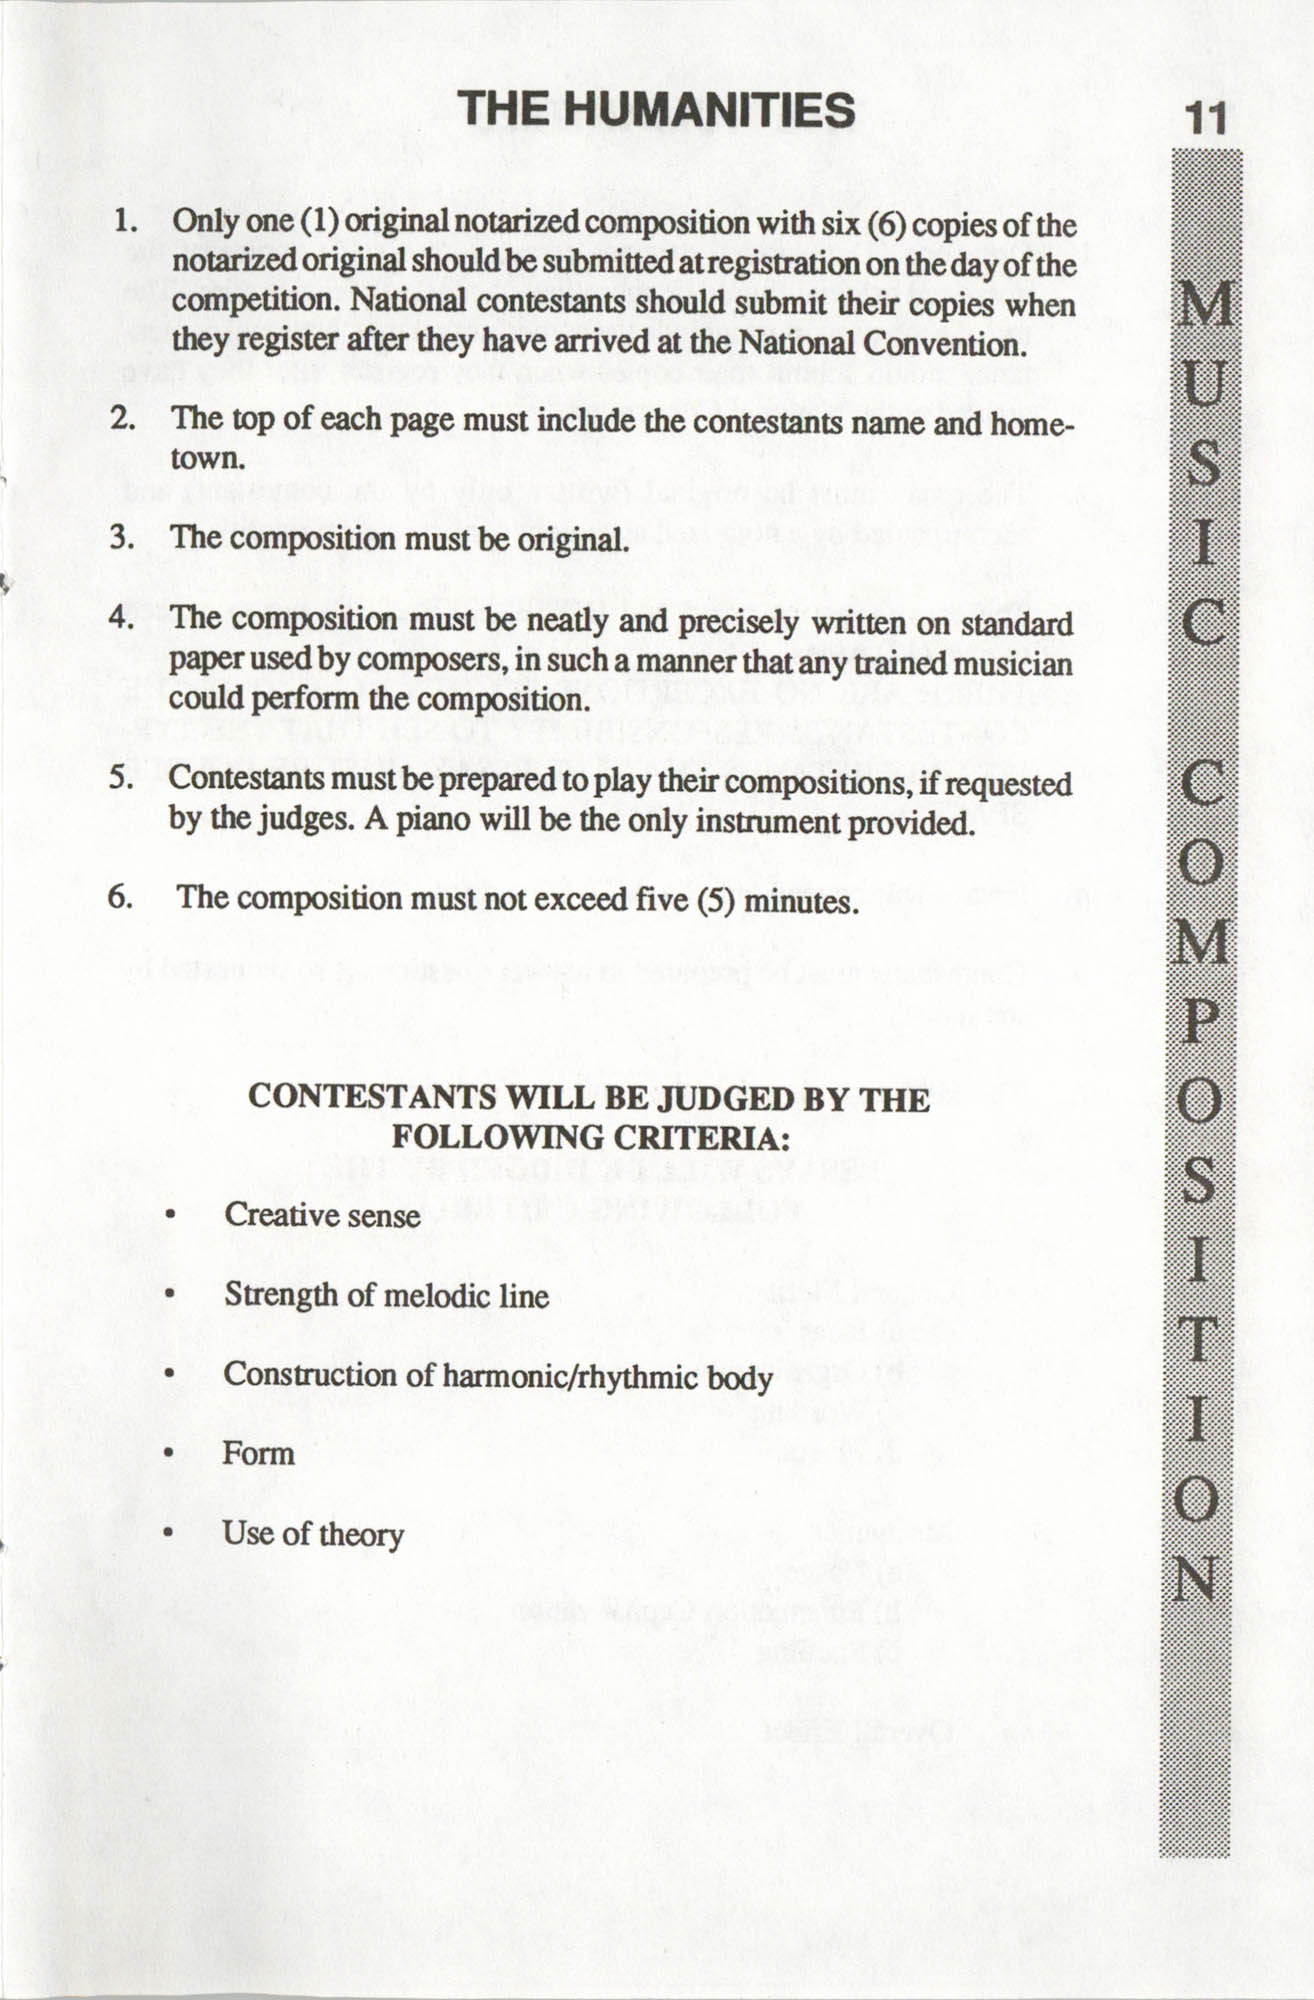 Brochure, ACT-SO Program, NAACP, 1992, Page 11